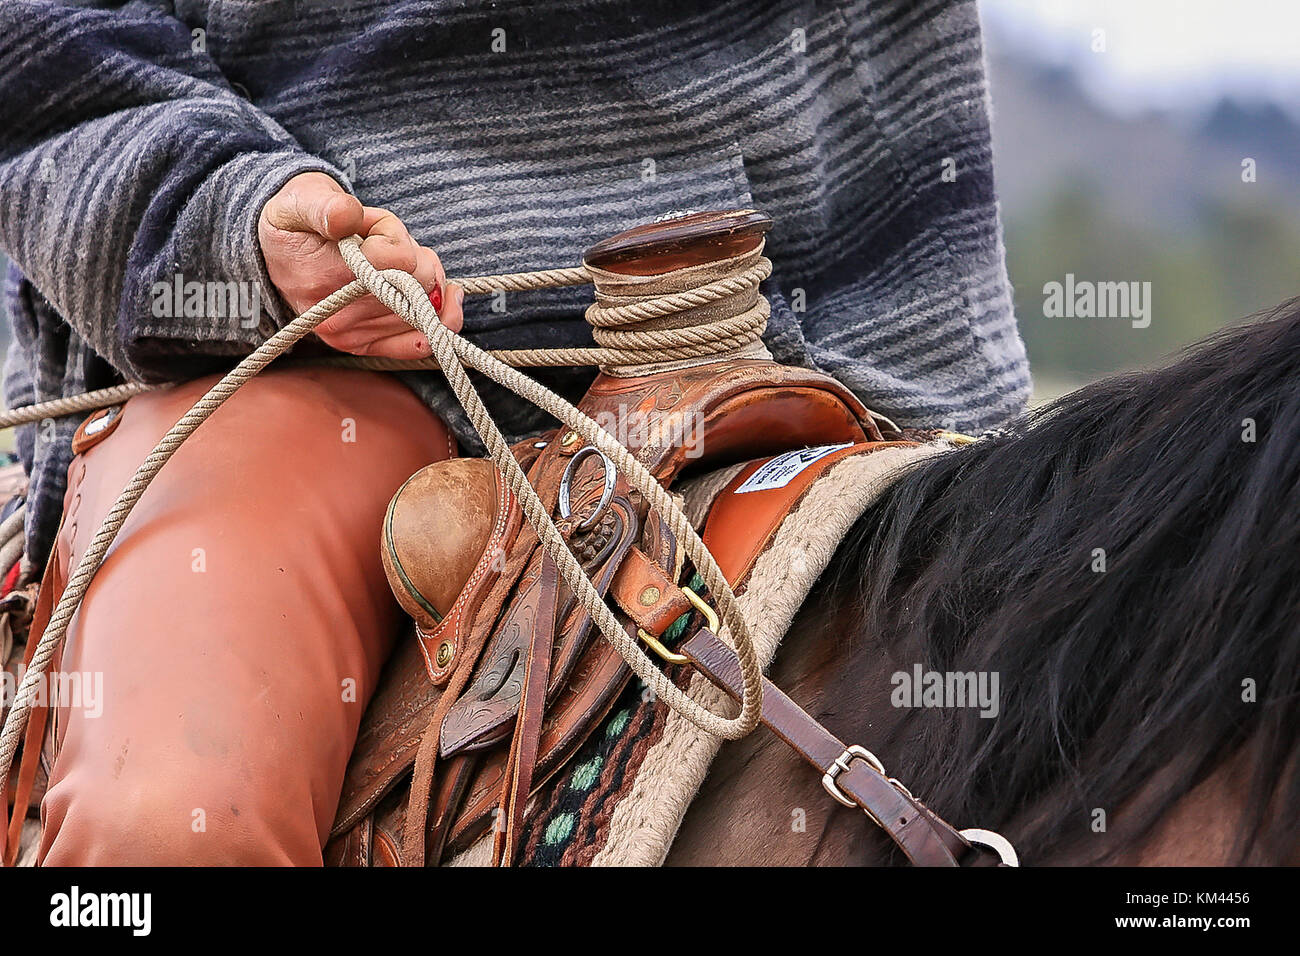 Hands Of A Working American Cowboy Roping Cattle - Stock Image